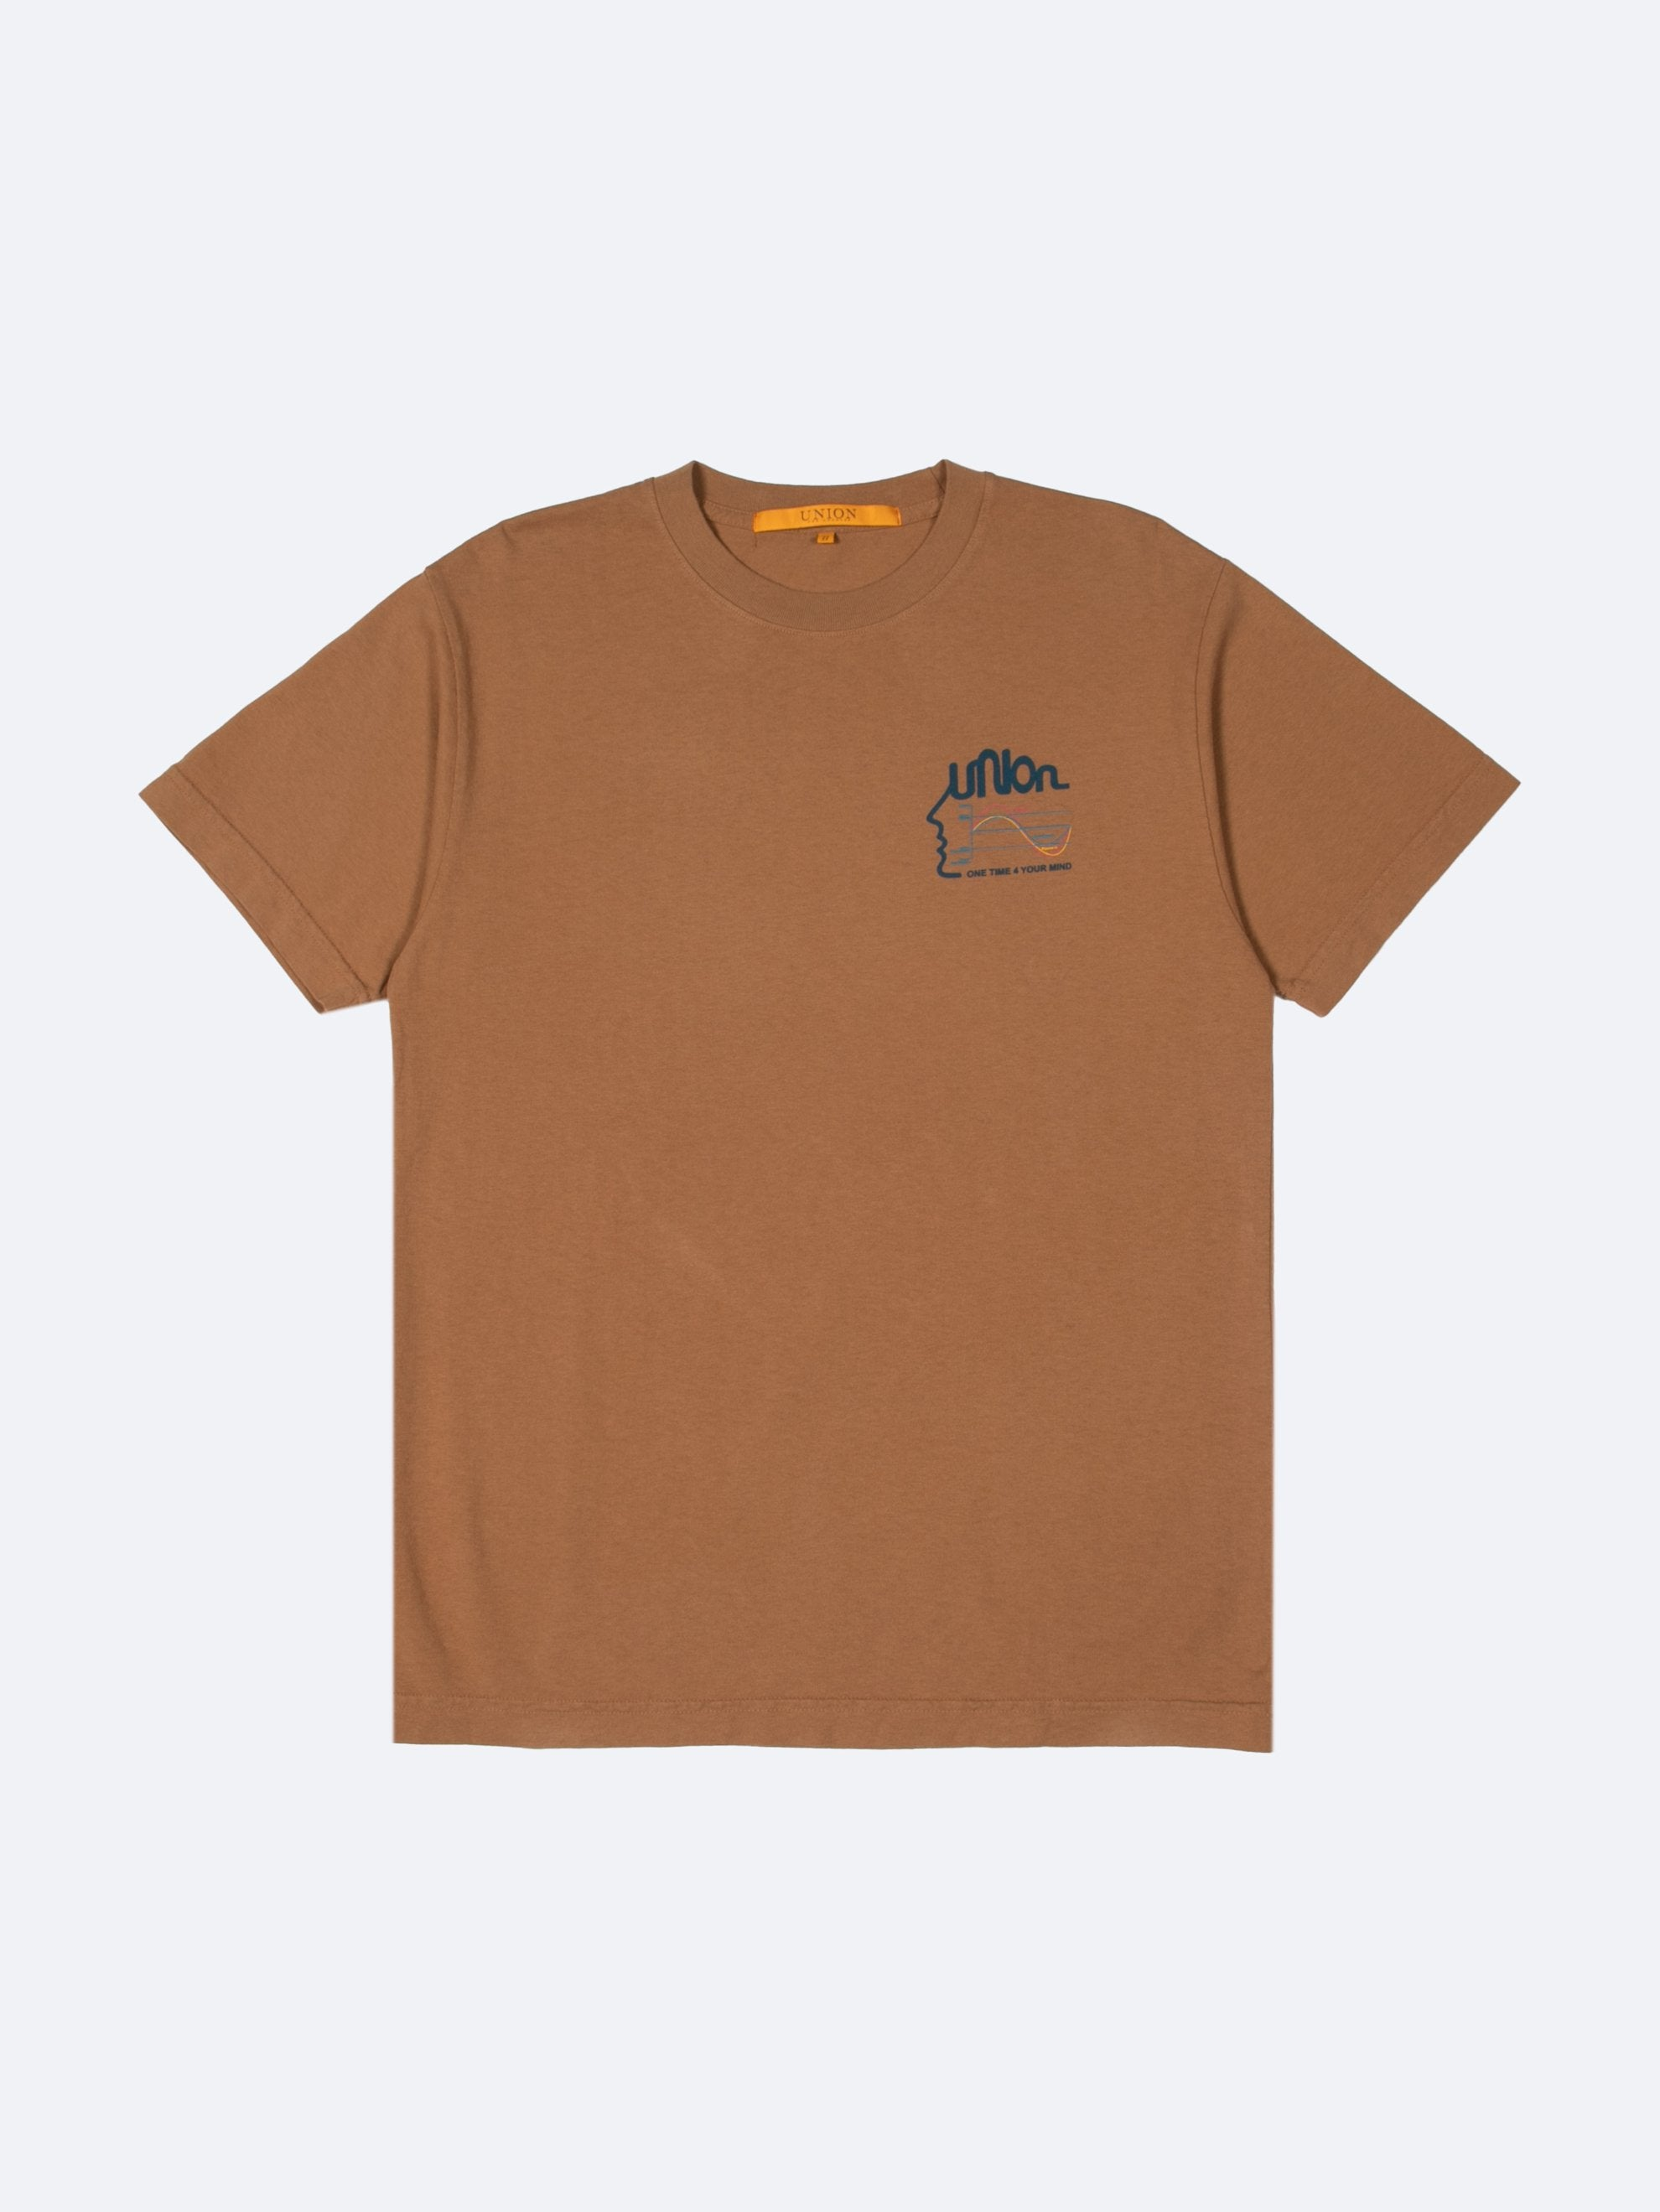 For Your Mind S/S Tee